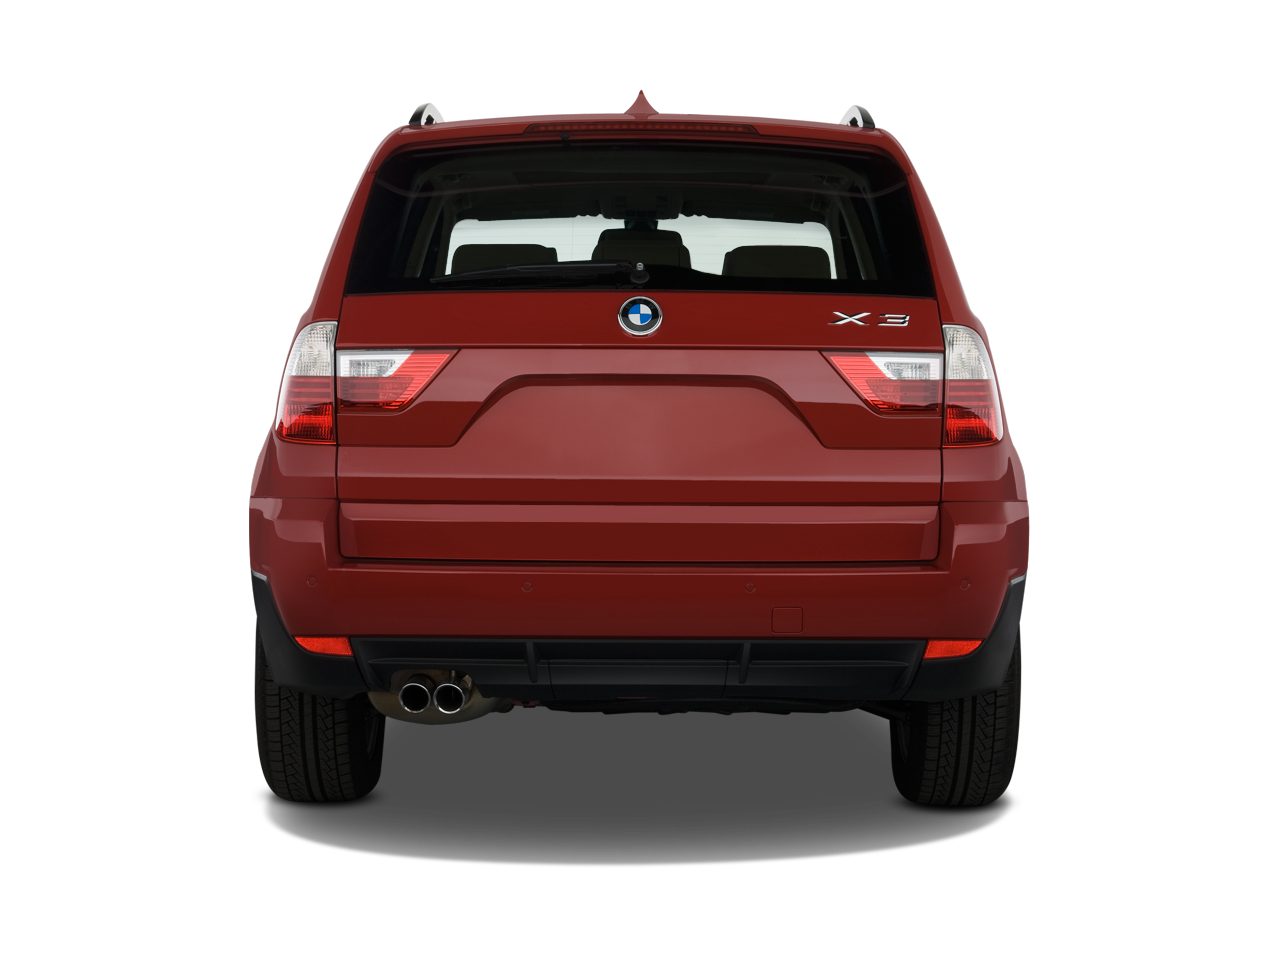 2008 Bmw X3 3 0si Bmw Luxury Compact Suv Review